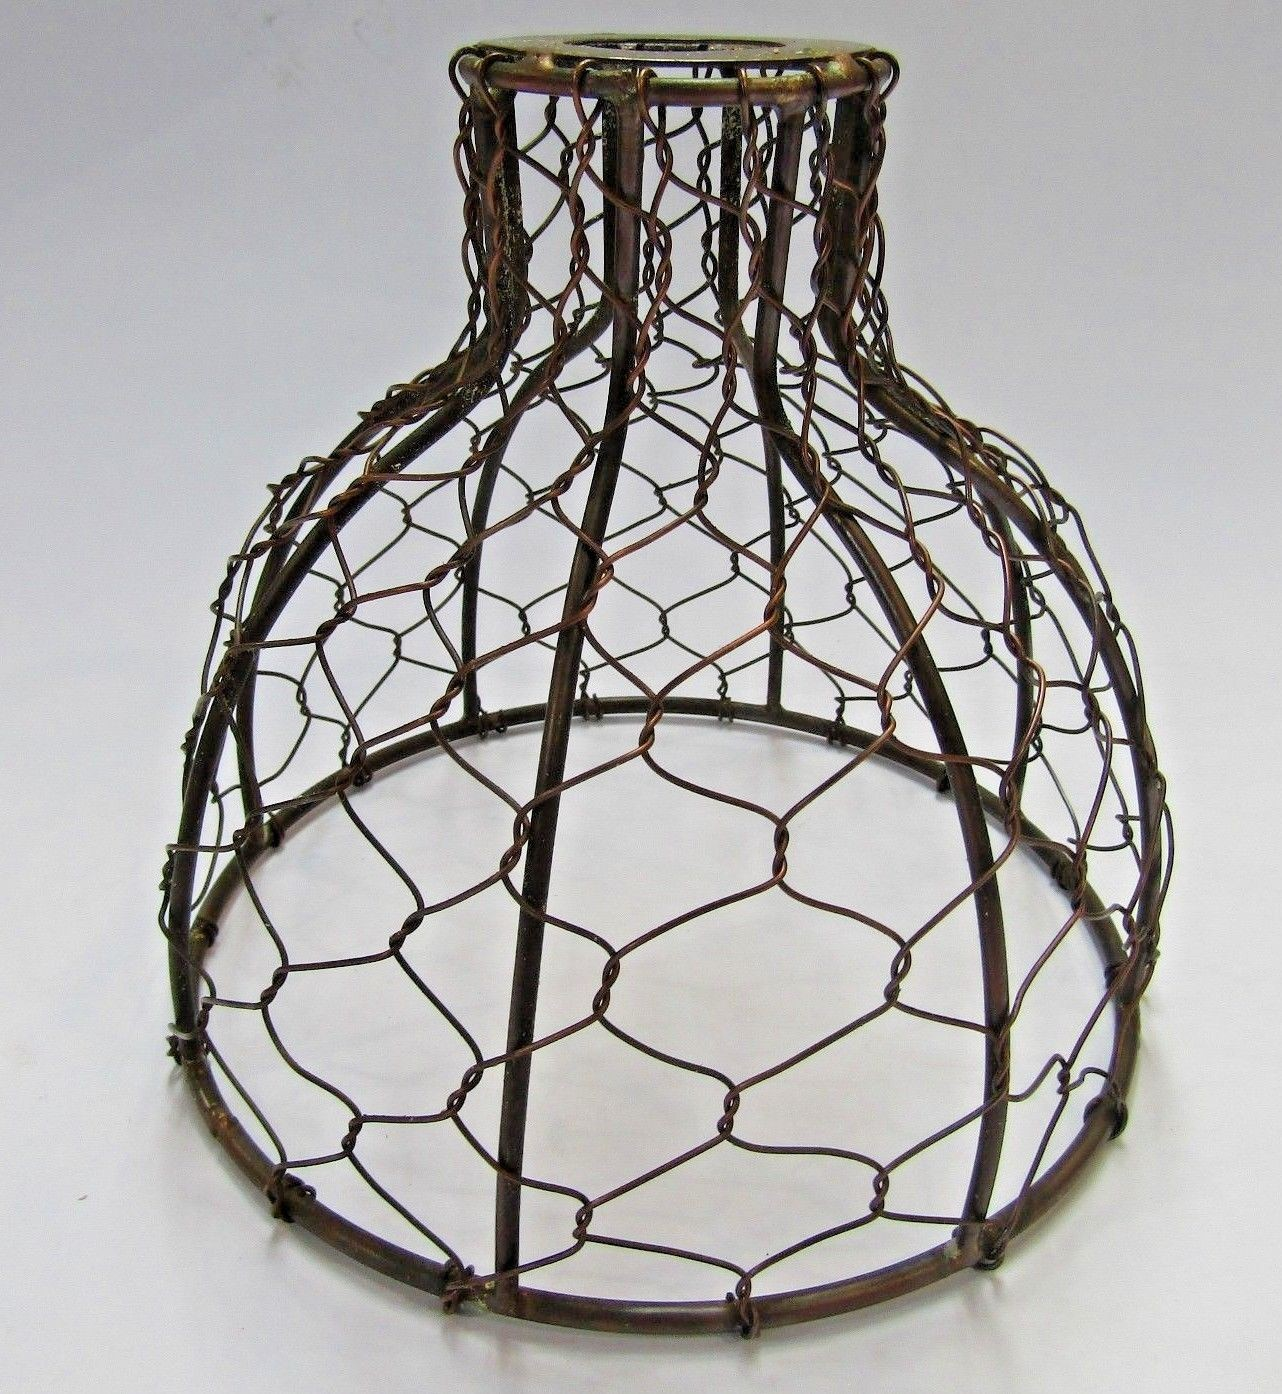 Wire Lampshade Industrial Rustic Vintage Retro Old Ceiling Pendant Light Shade Ironmongery World